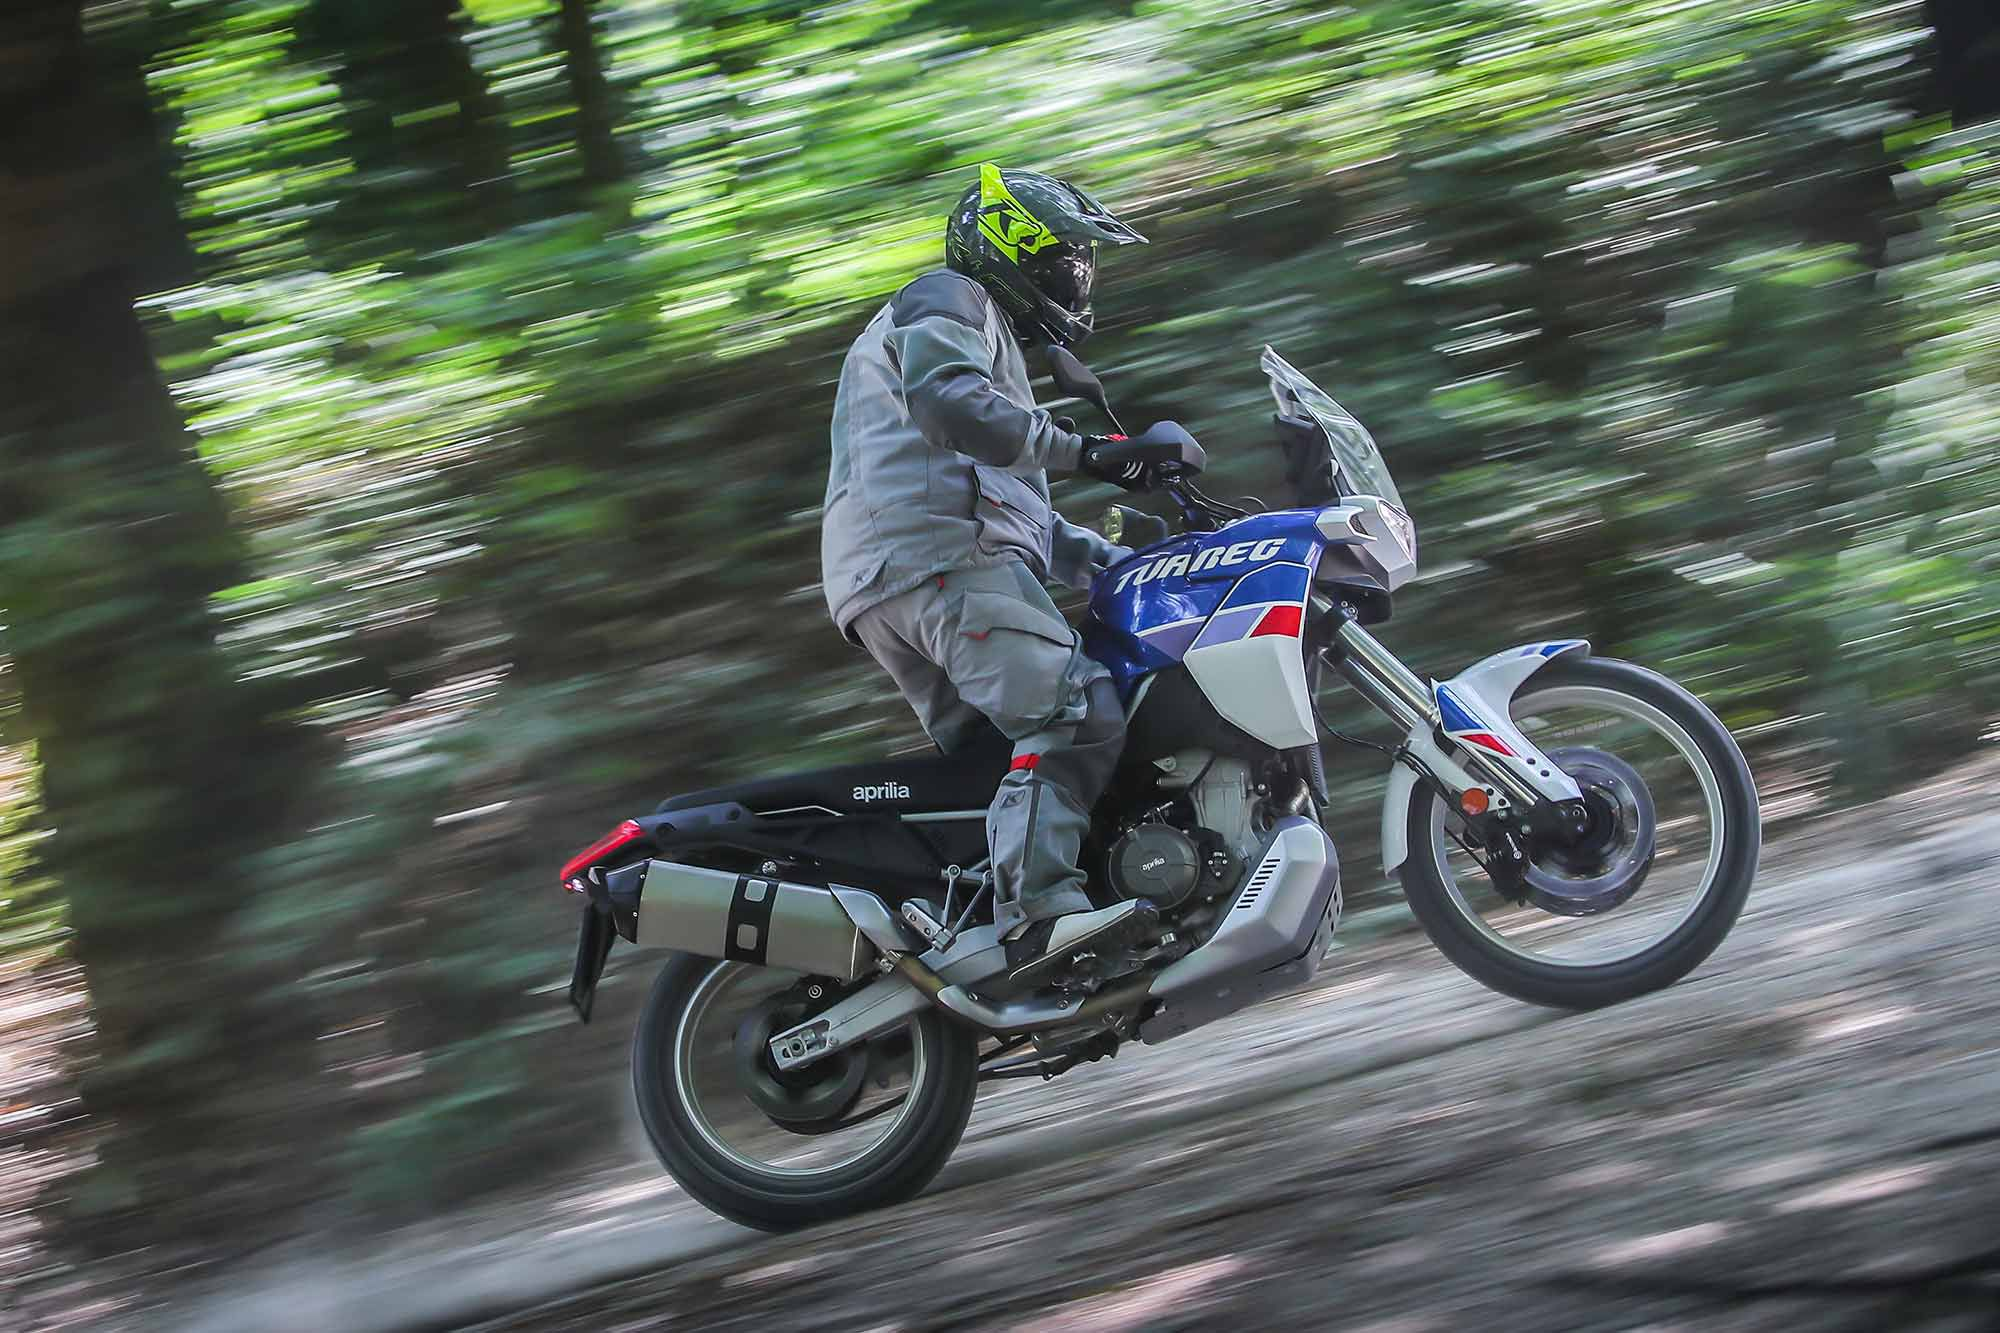 We are looking forward to a ride on the production Aprilia Tuareg later this year.